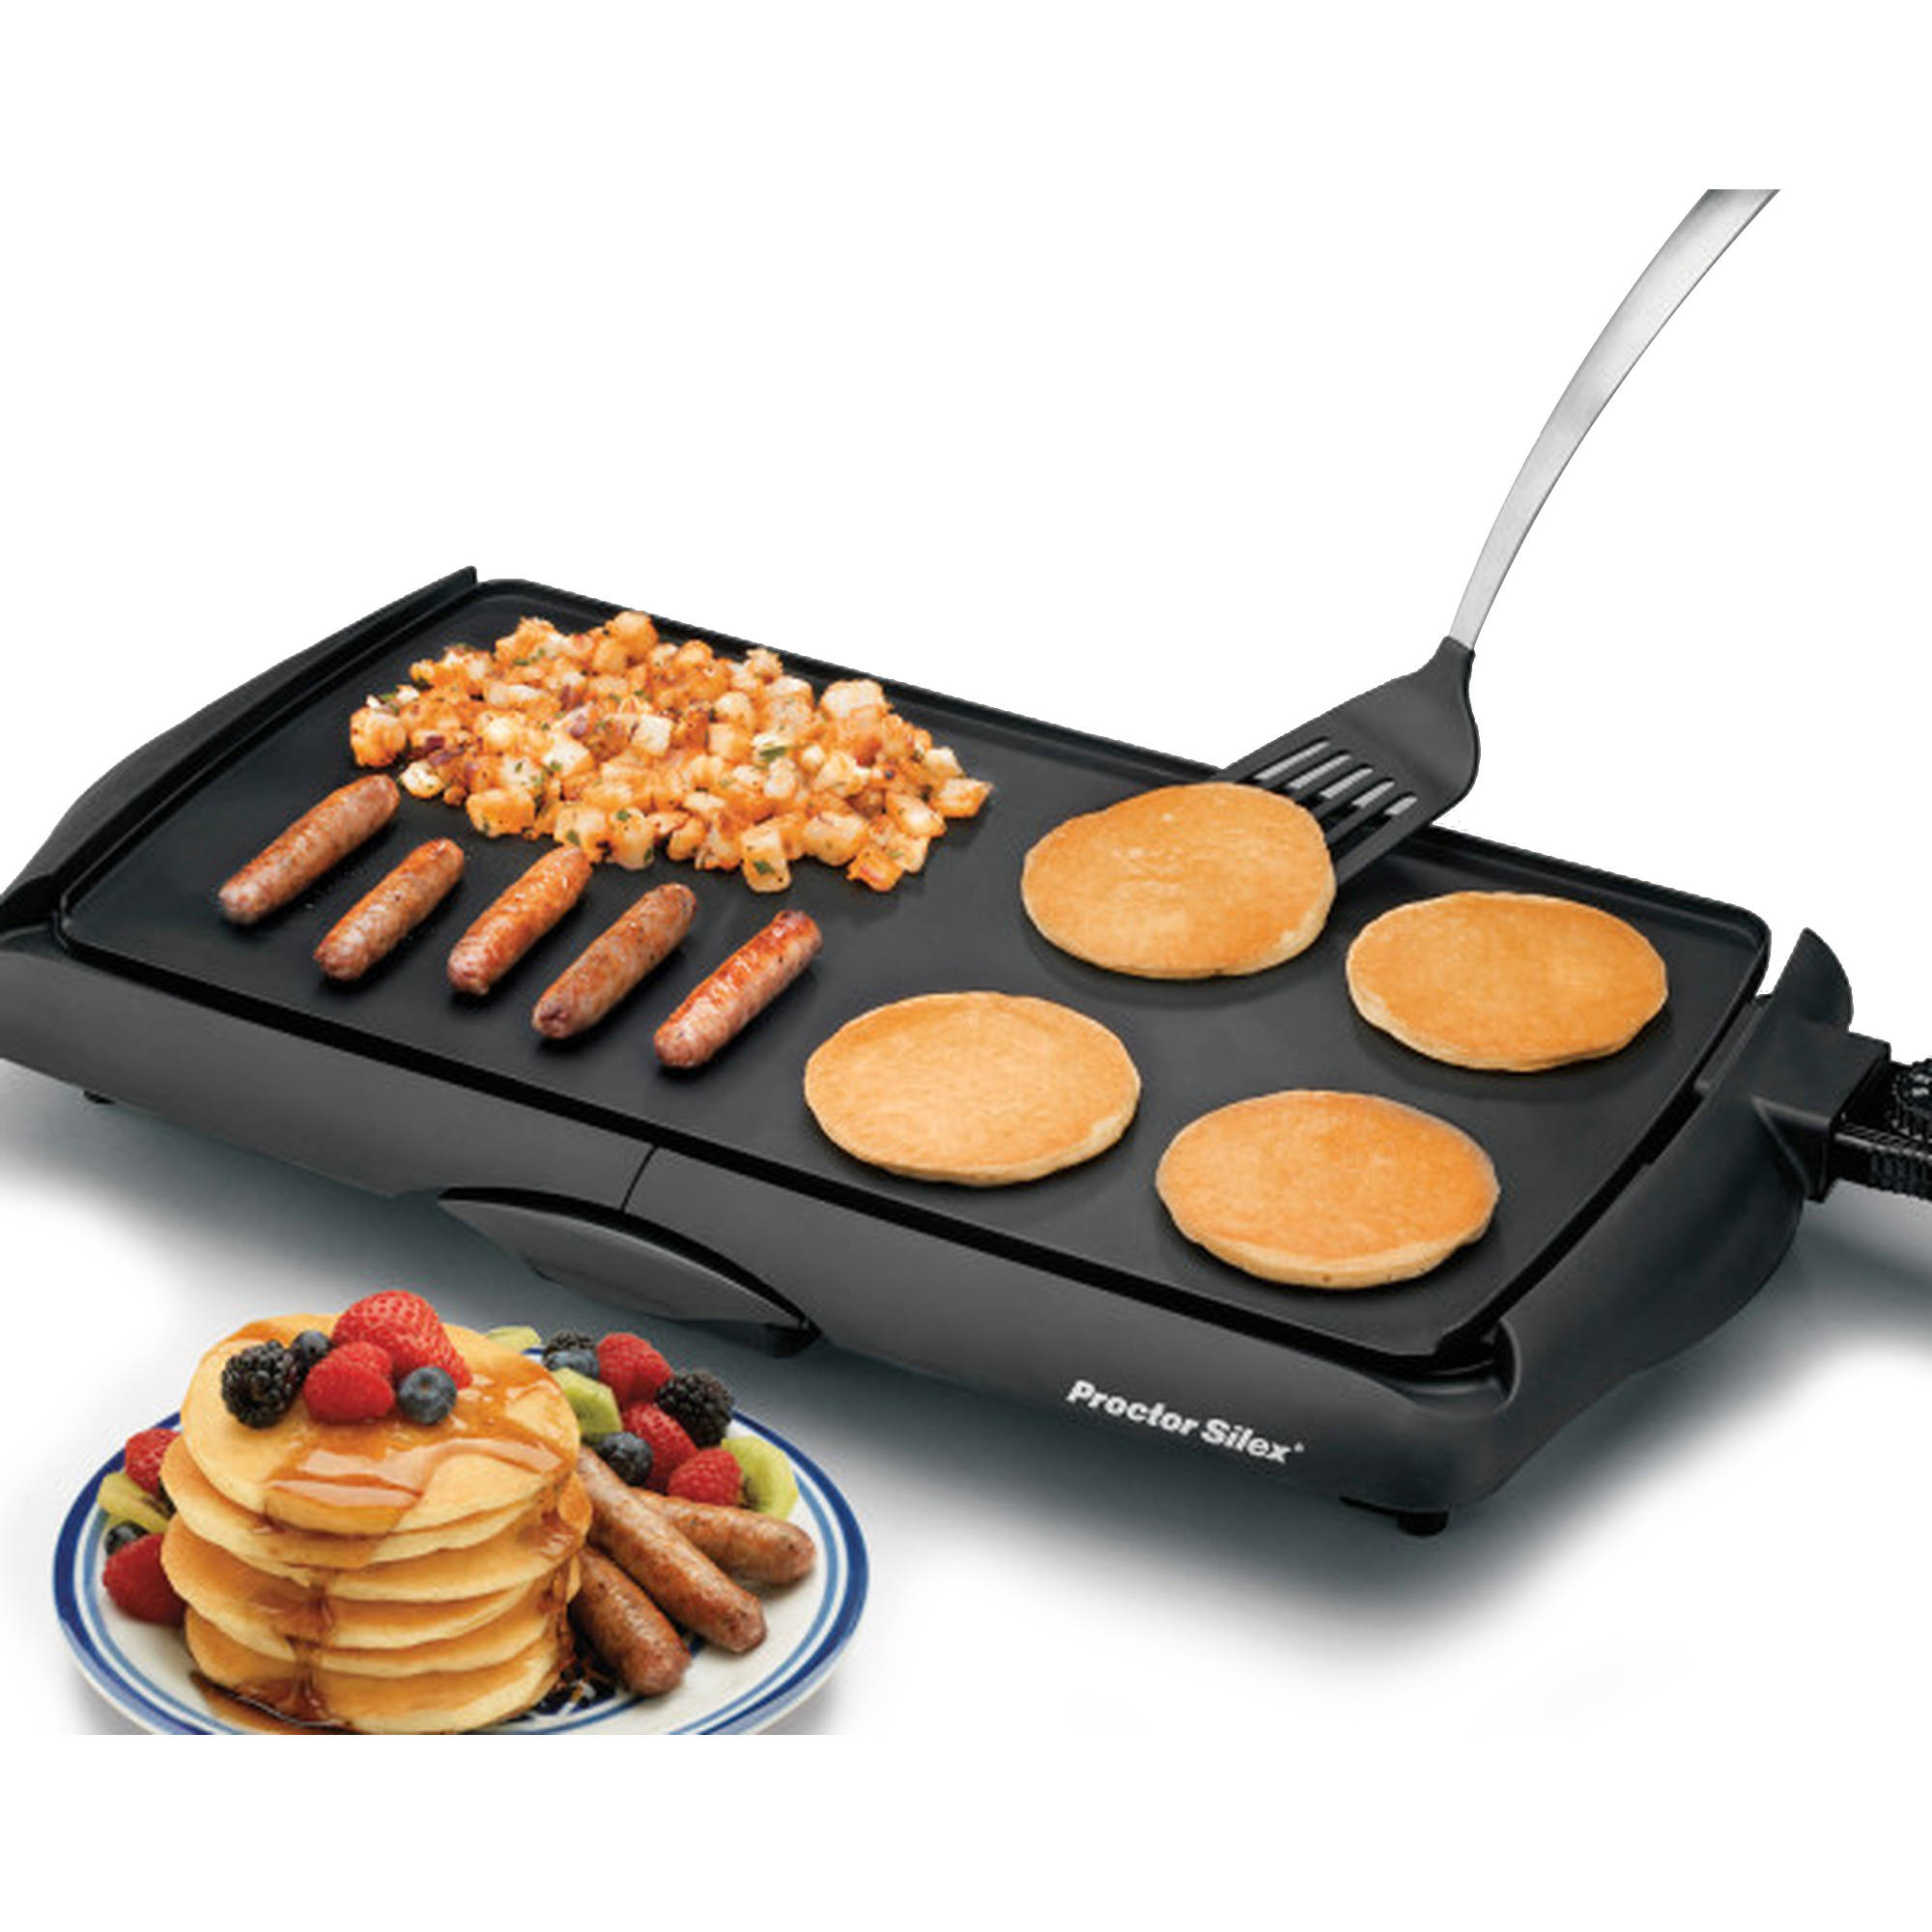 Proctor Silex Electric Griddle | Model# 38513P